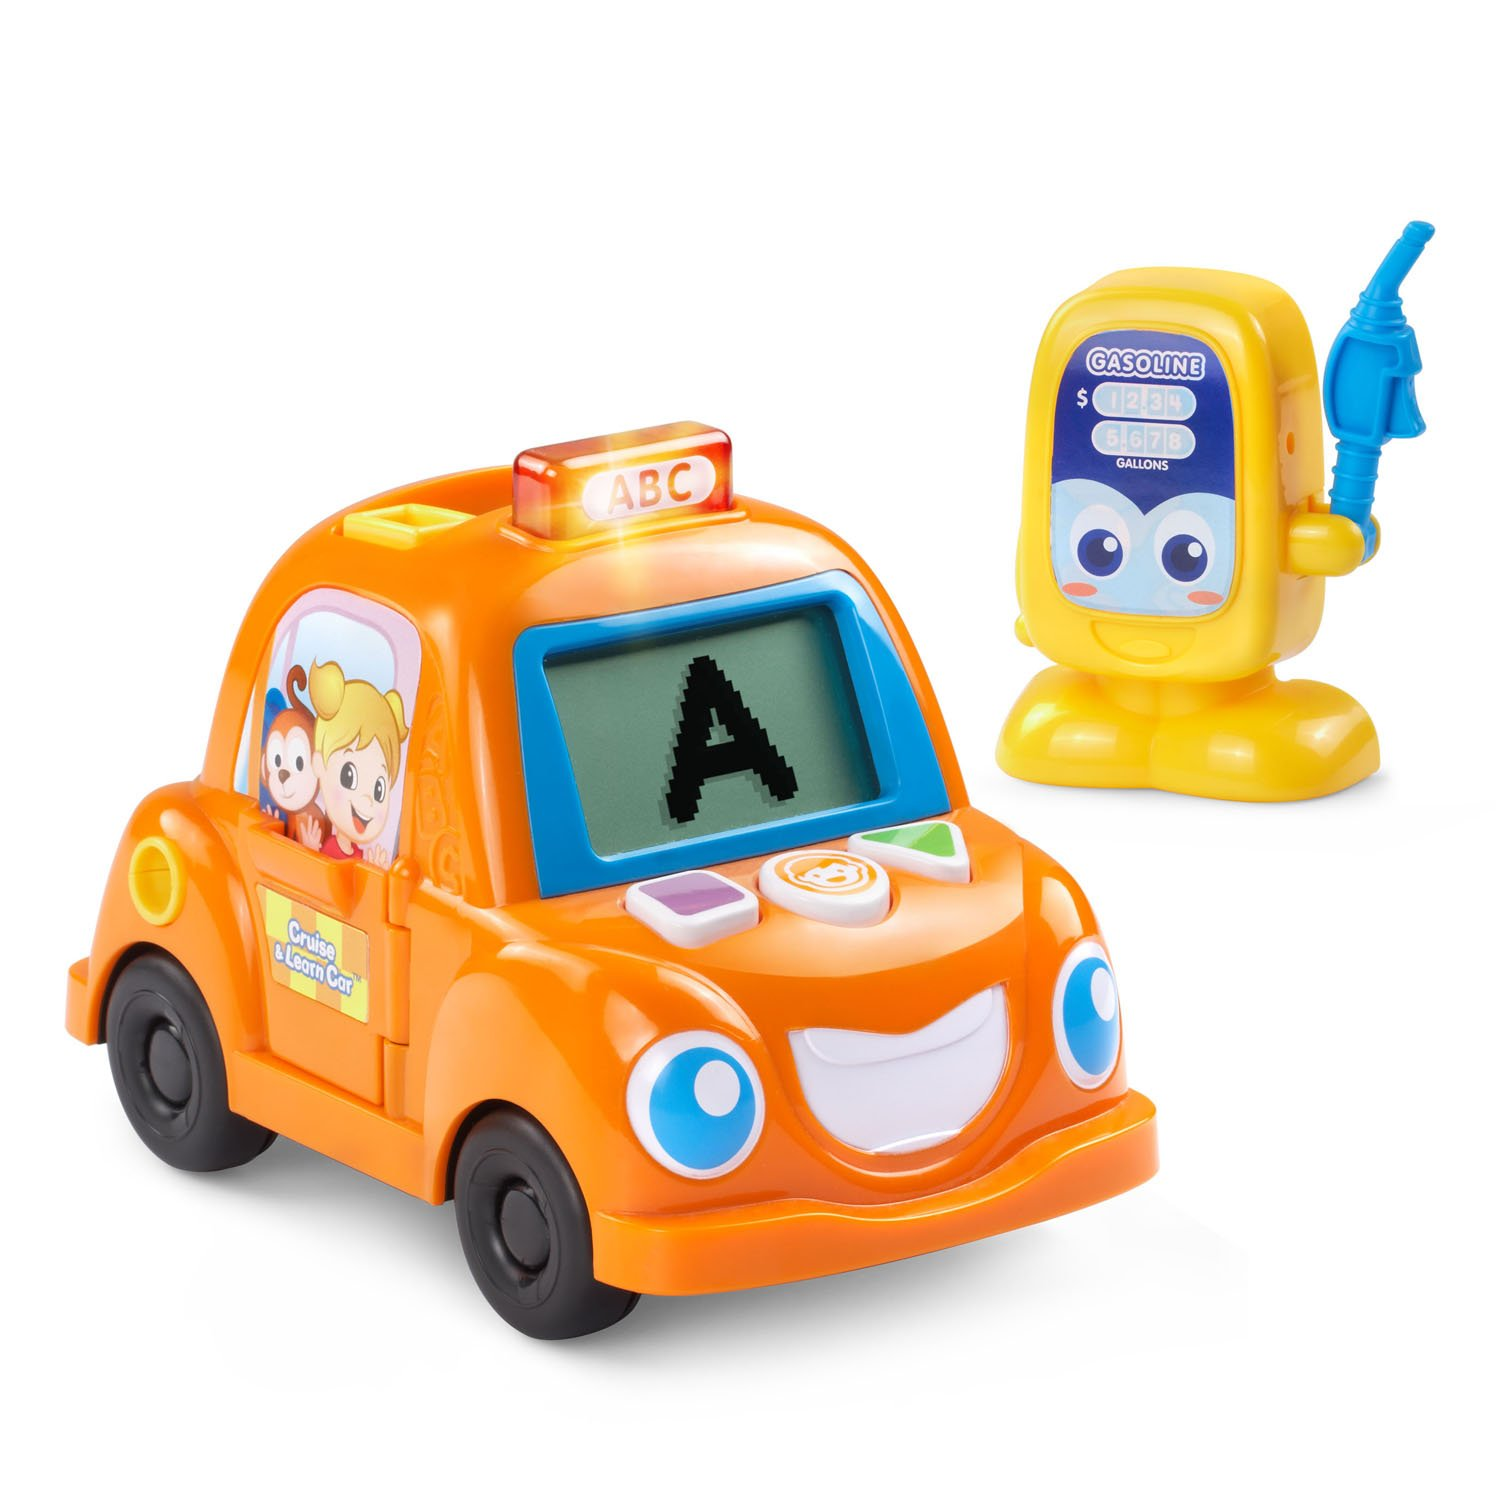 Amazon VTech Cruise and Learn Car Toys & Games